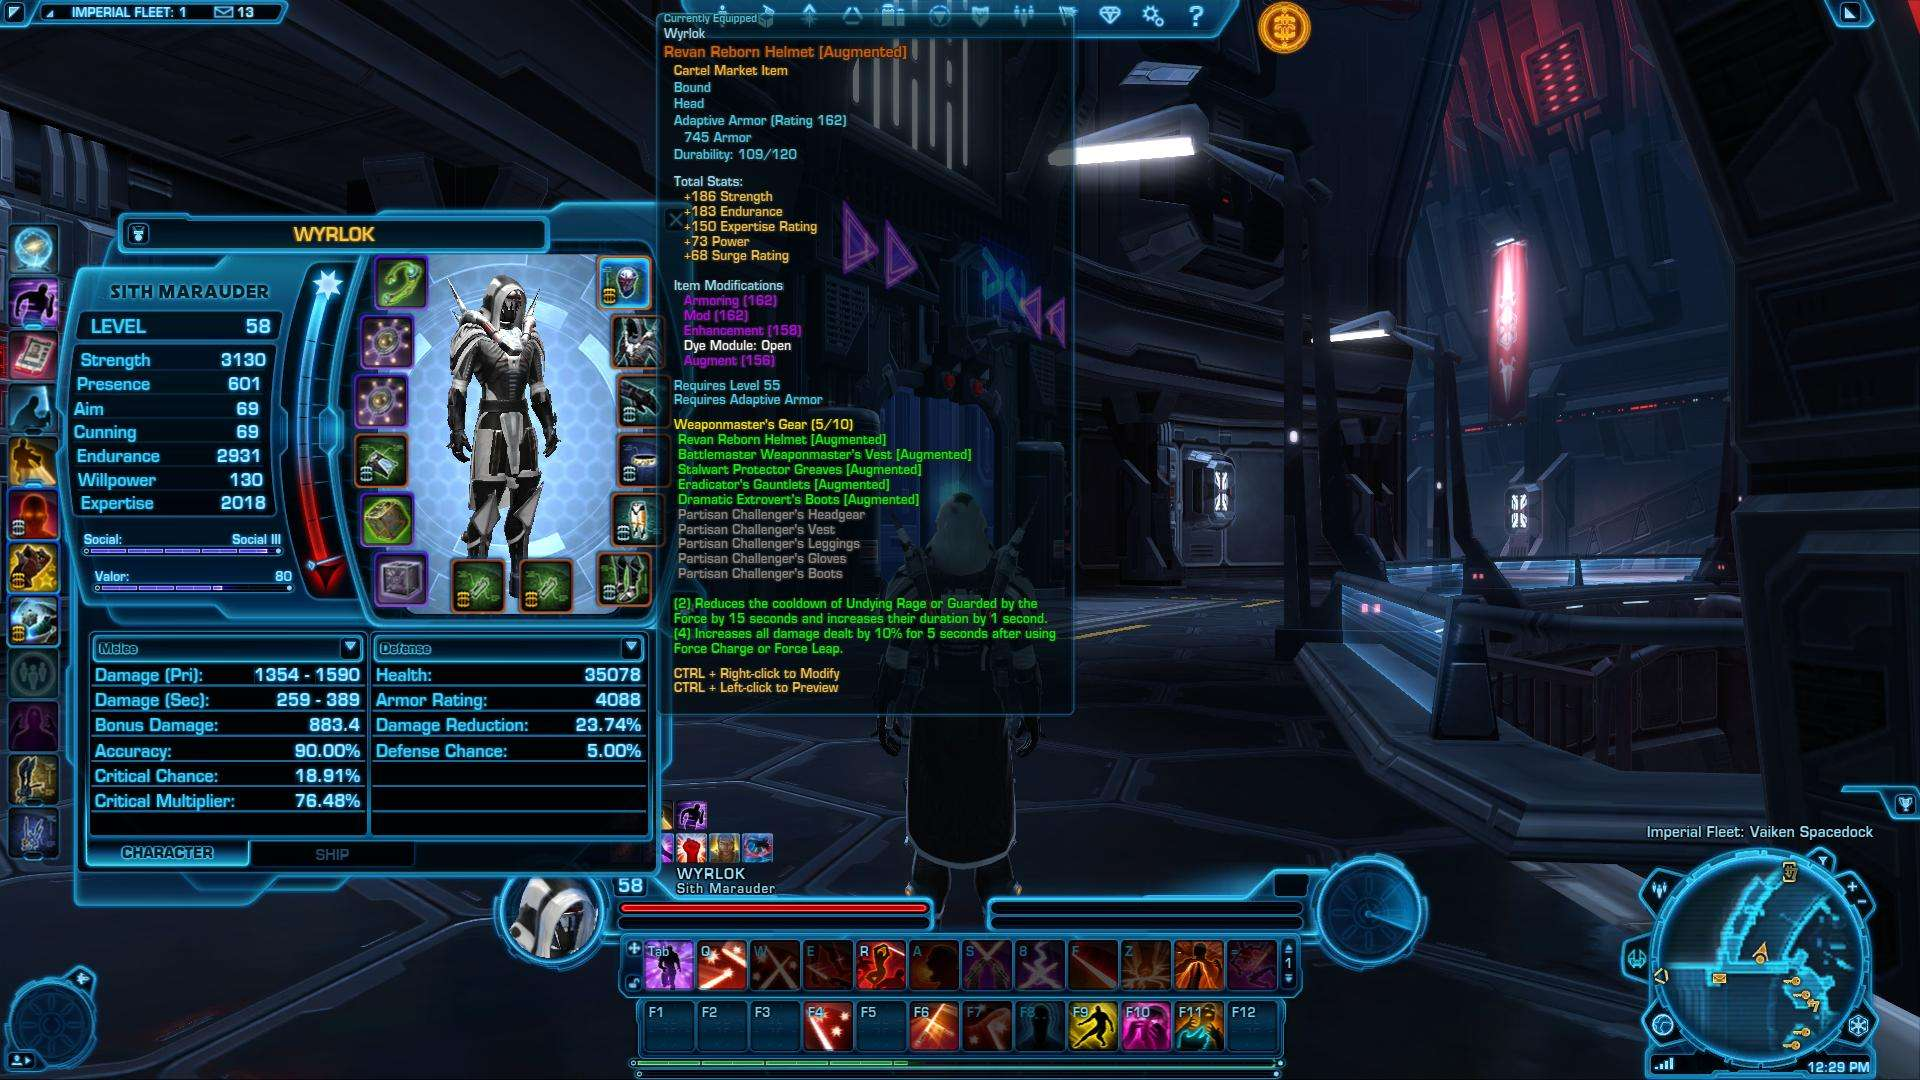 Cleaned My Room! Swtor_18